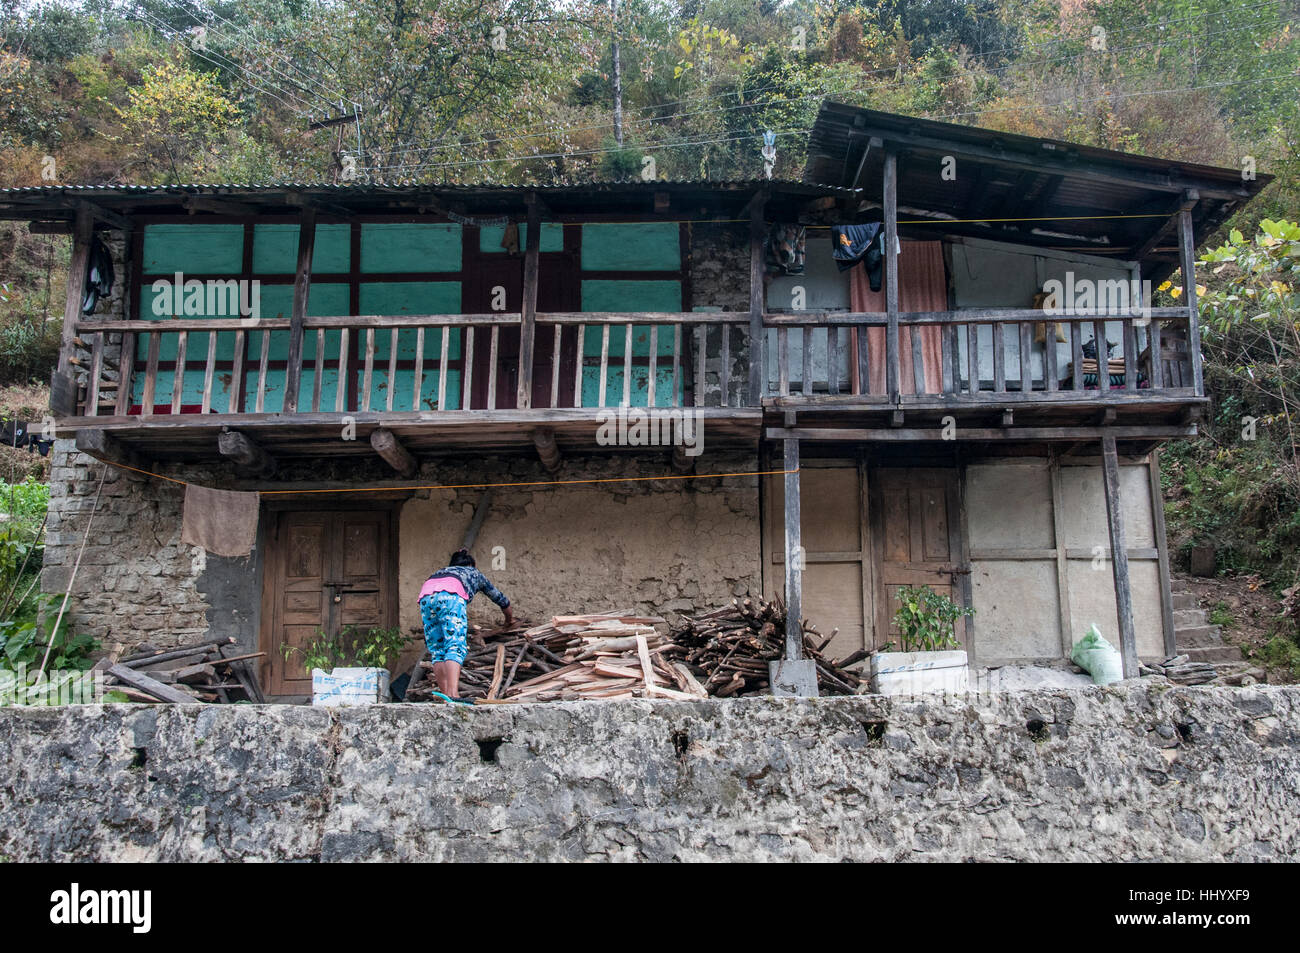 A householder tidying her front porch beside the Tawang road, Arunachal Pradesh, northeast India - Stock Image